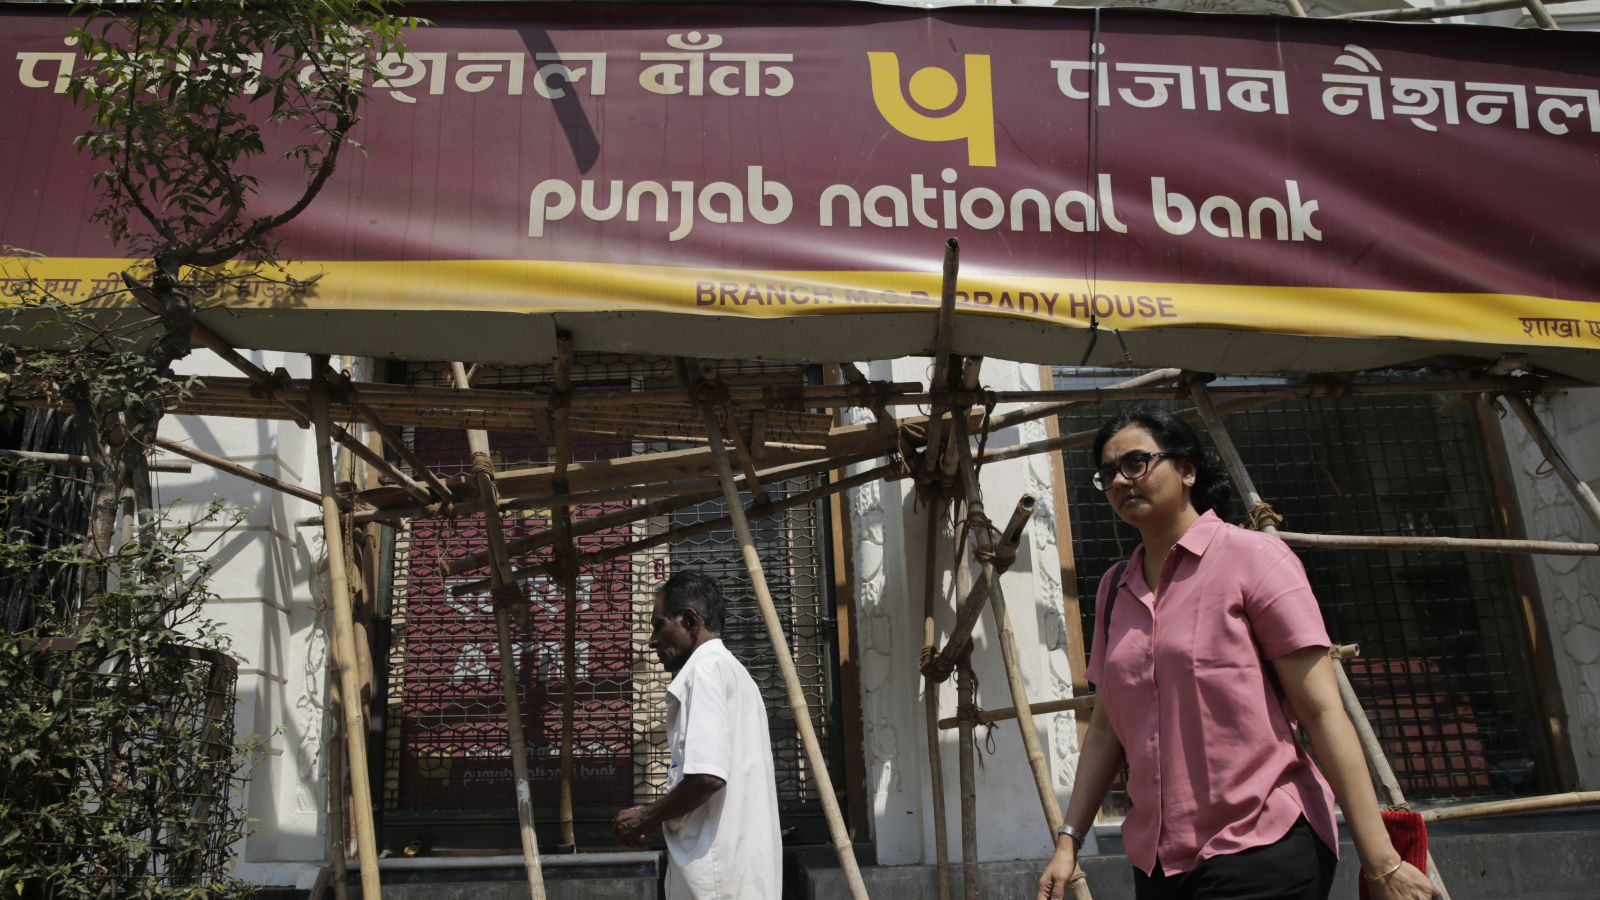 People walk pats a Punjab National Bank branch after it was sealed by the Central Bureau of Investigation in Mumbai, India, Monday, Feb. 19, 2018. Indian investigators on Friday ordered two wealthy jewelers to be questioned about an alleged $1.8 billion scam at the large state-owned bank, a news report said